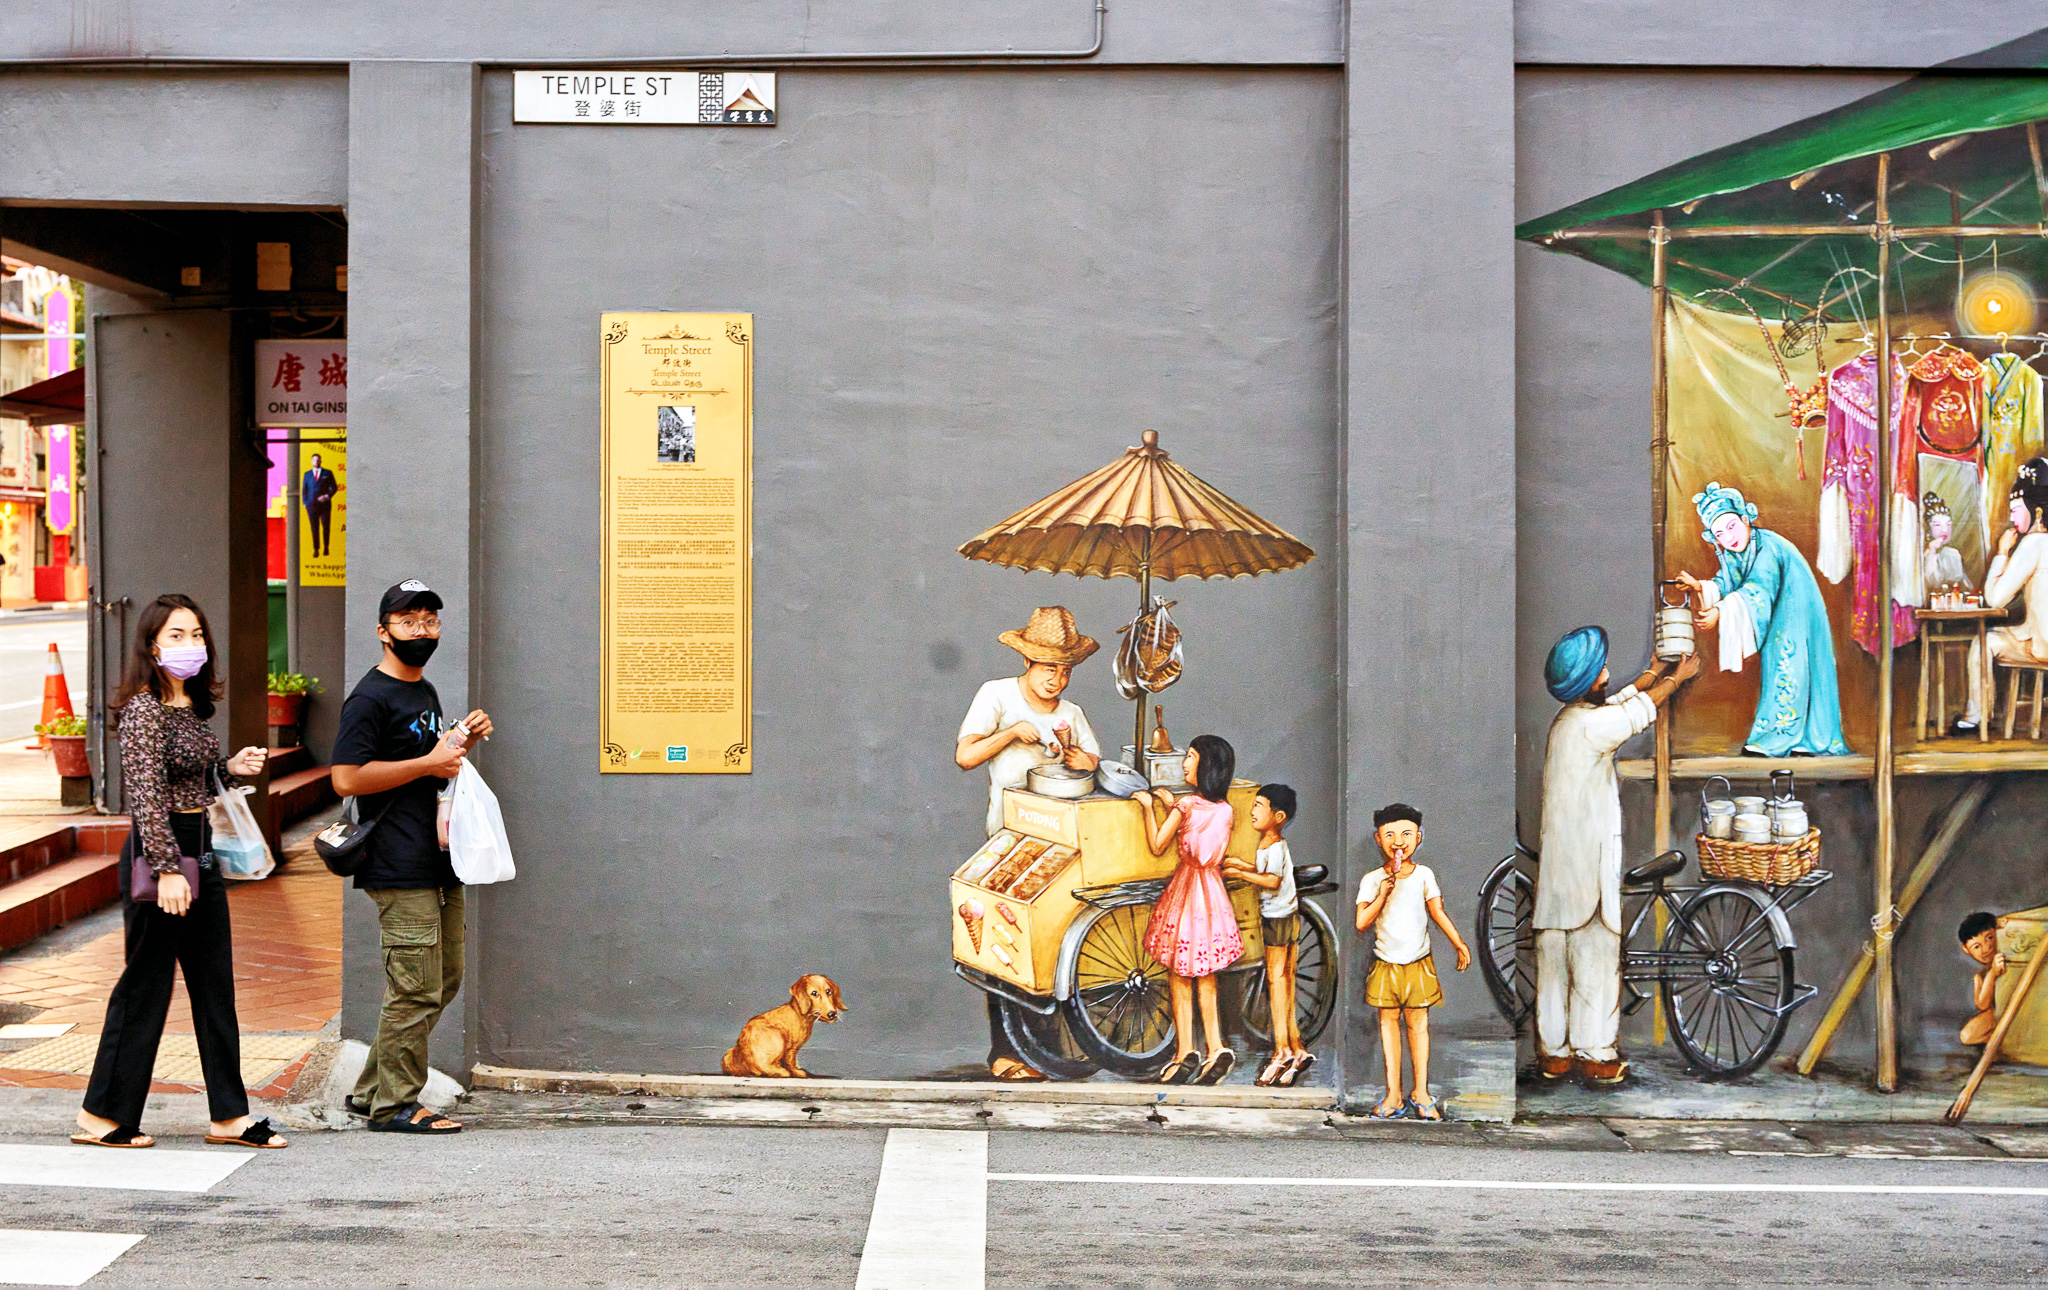 A couple passing by the wall mural, Temple Street, China Town, Singapore